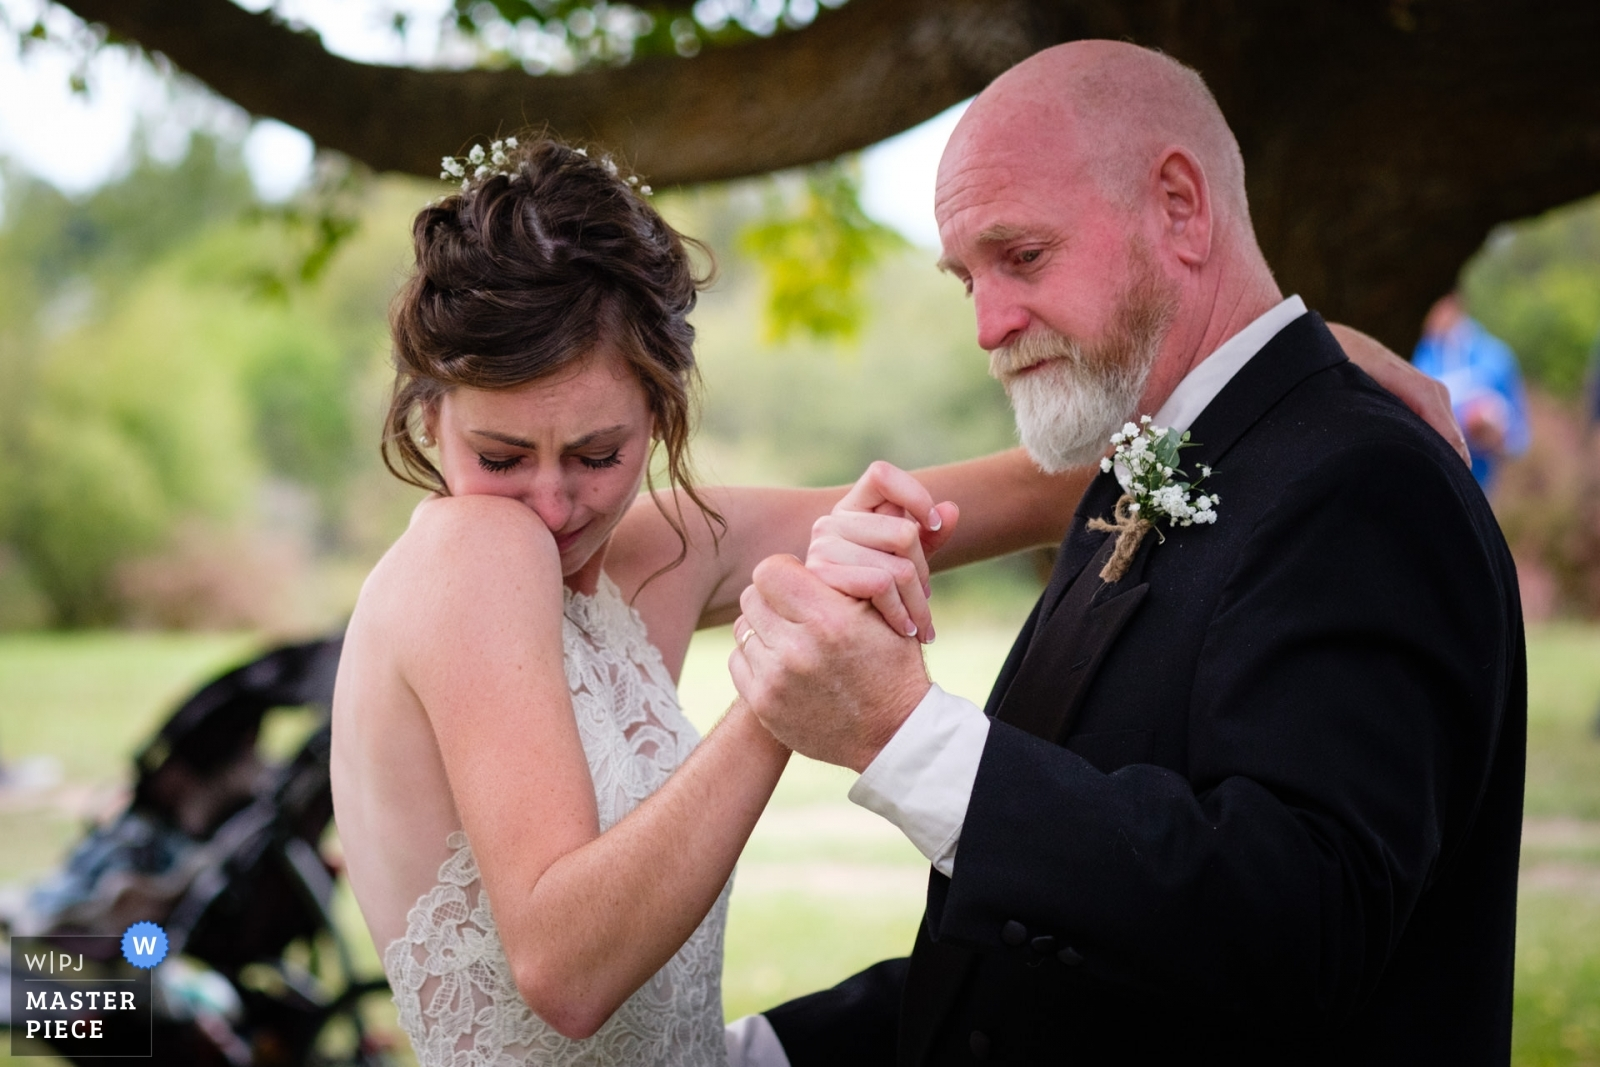 A bride tears up at the start of her father/daughter wedding dance. - Montana, United States Wedding Photography -    Brides family farm near Kalispell Montana